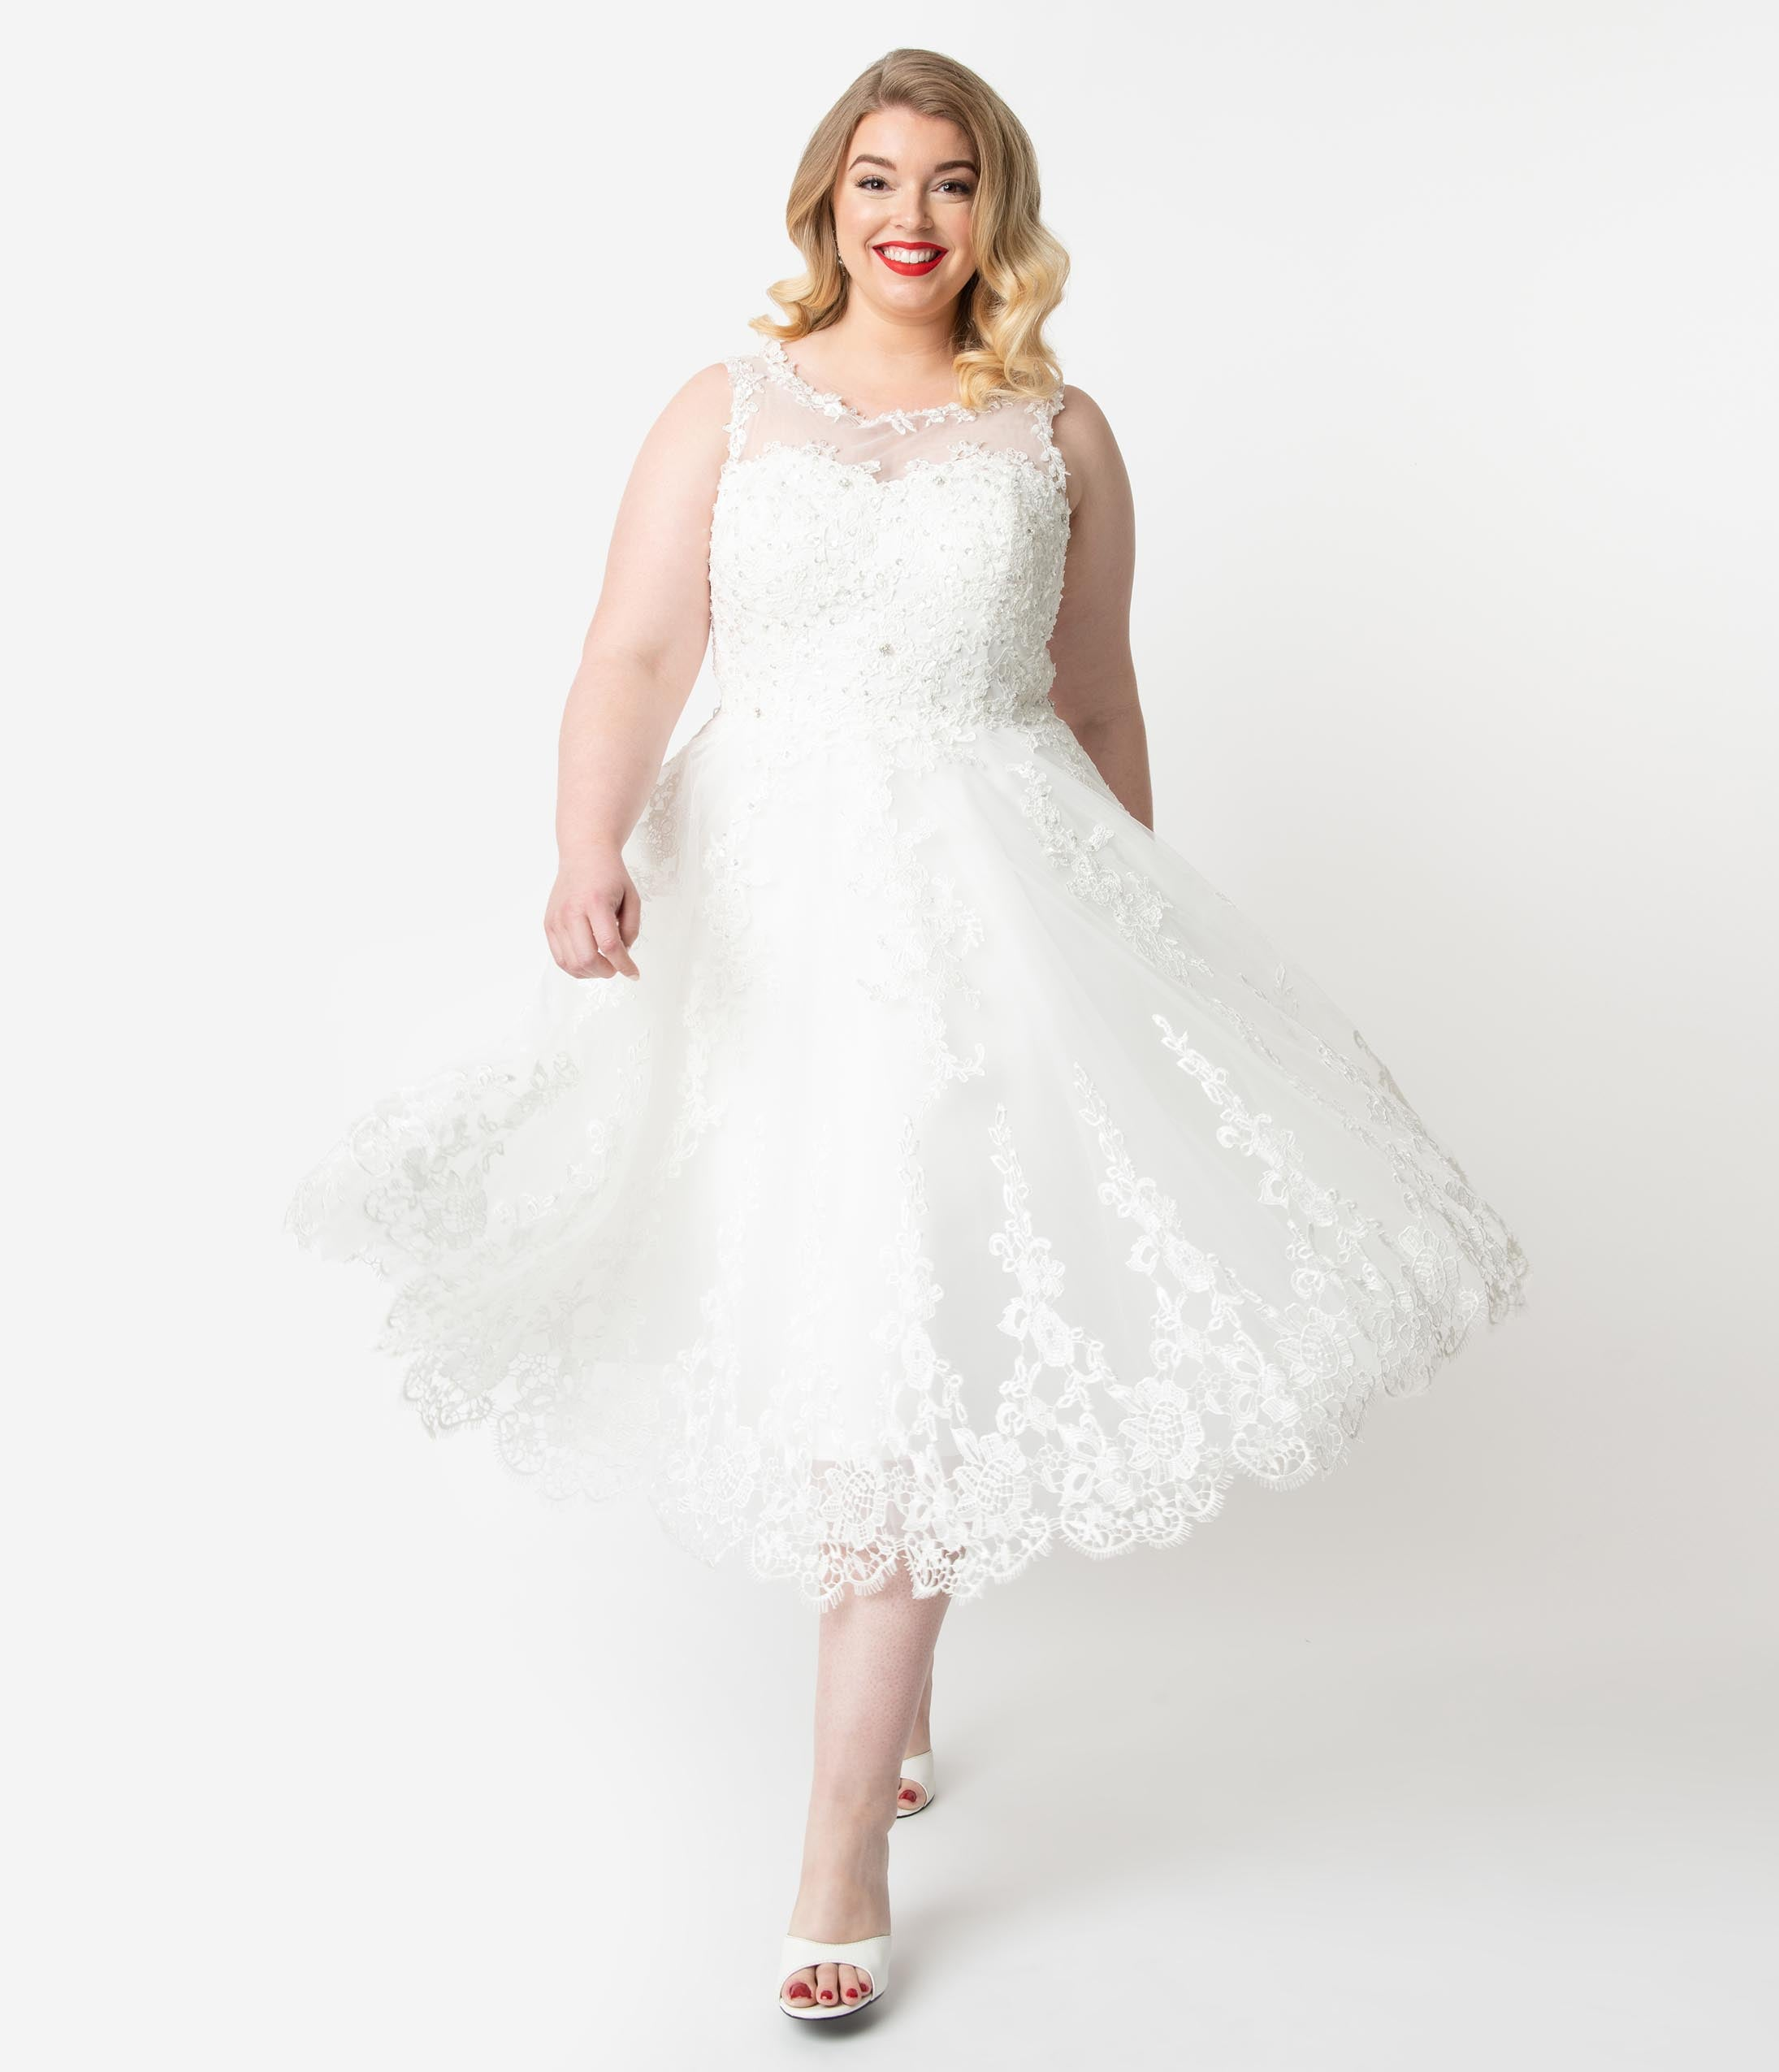 Vintage Style Wedding Dresses, Vintage Inspired Wedding Gowns Unique Vintage Plus Size 1950S Ivory Lace  Tulle Riviera Bridal Dress $228.00 AT vintagedancer.com